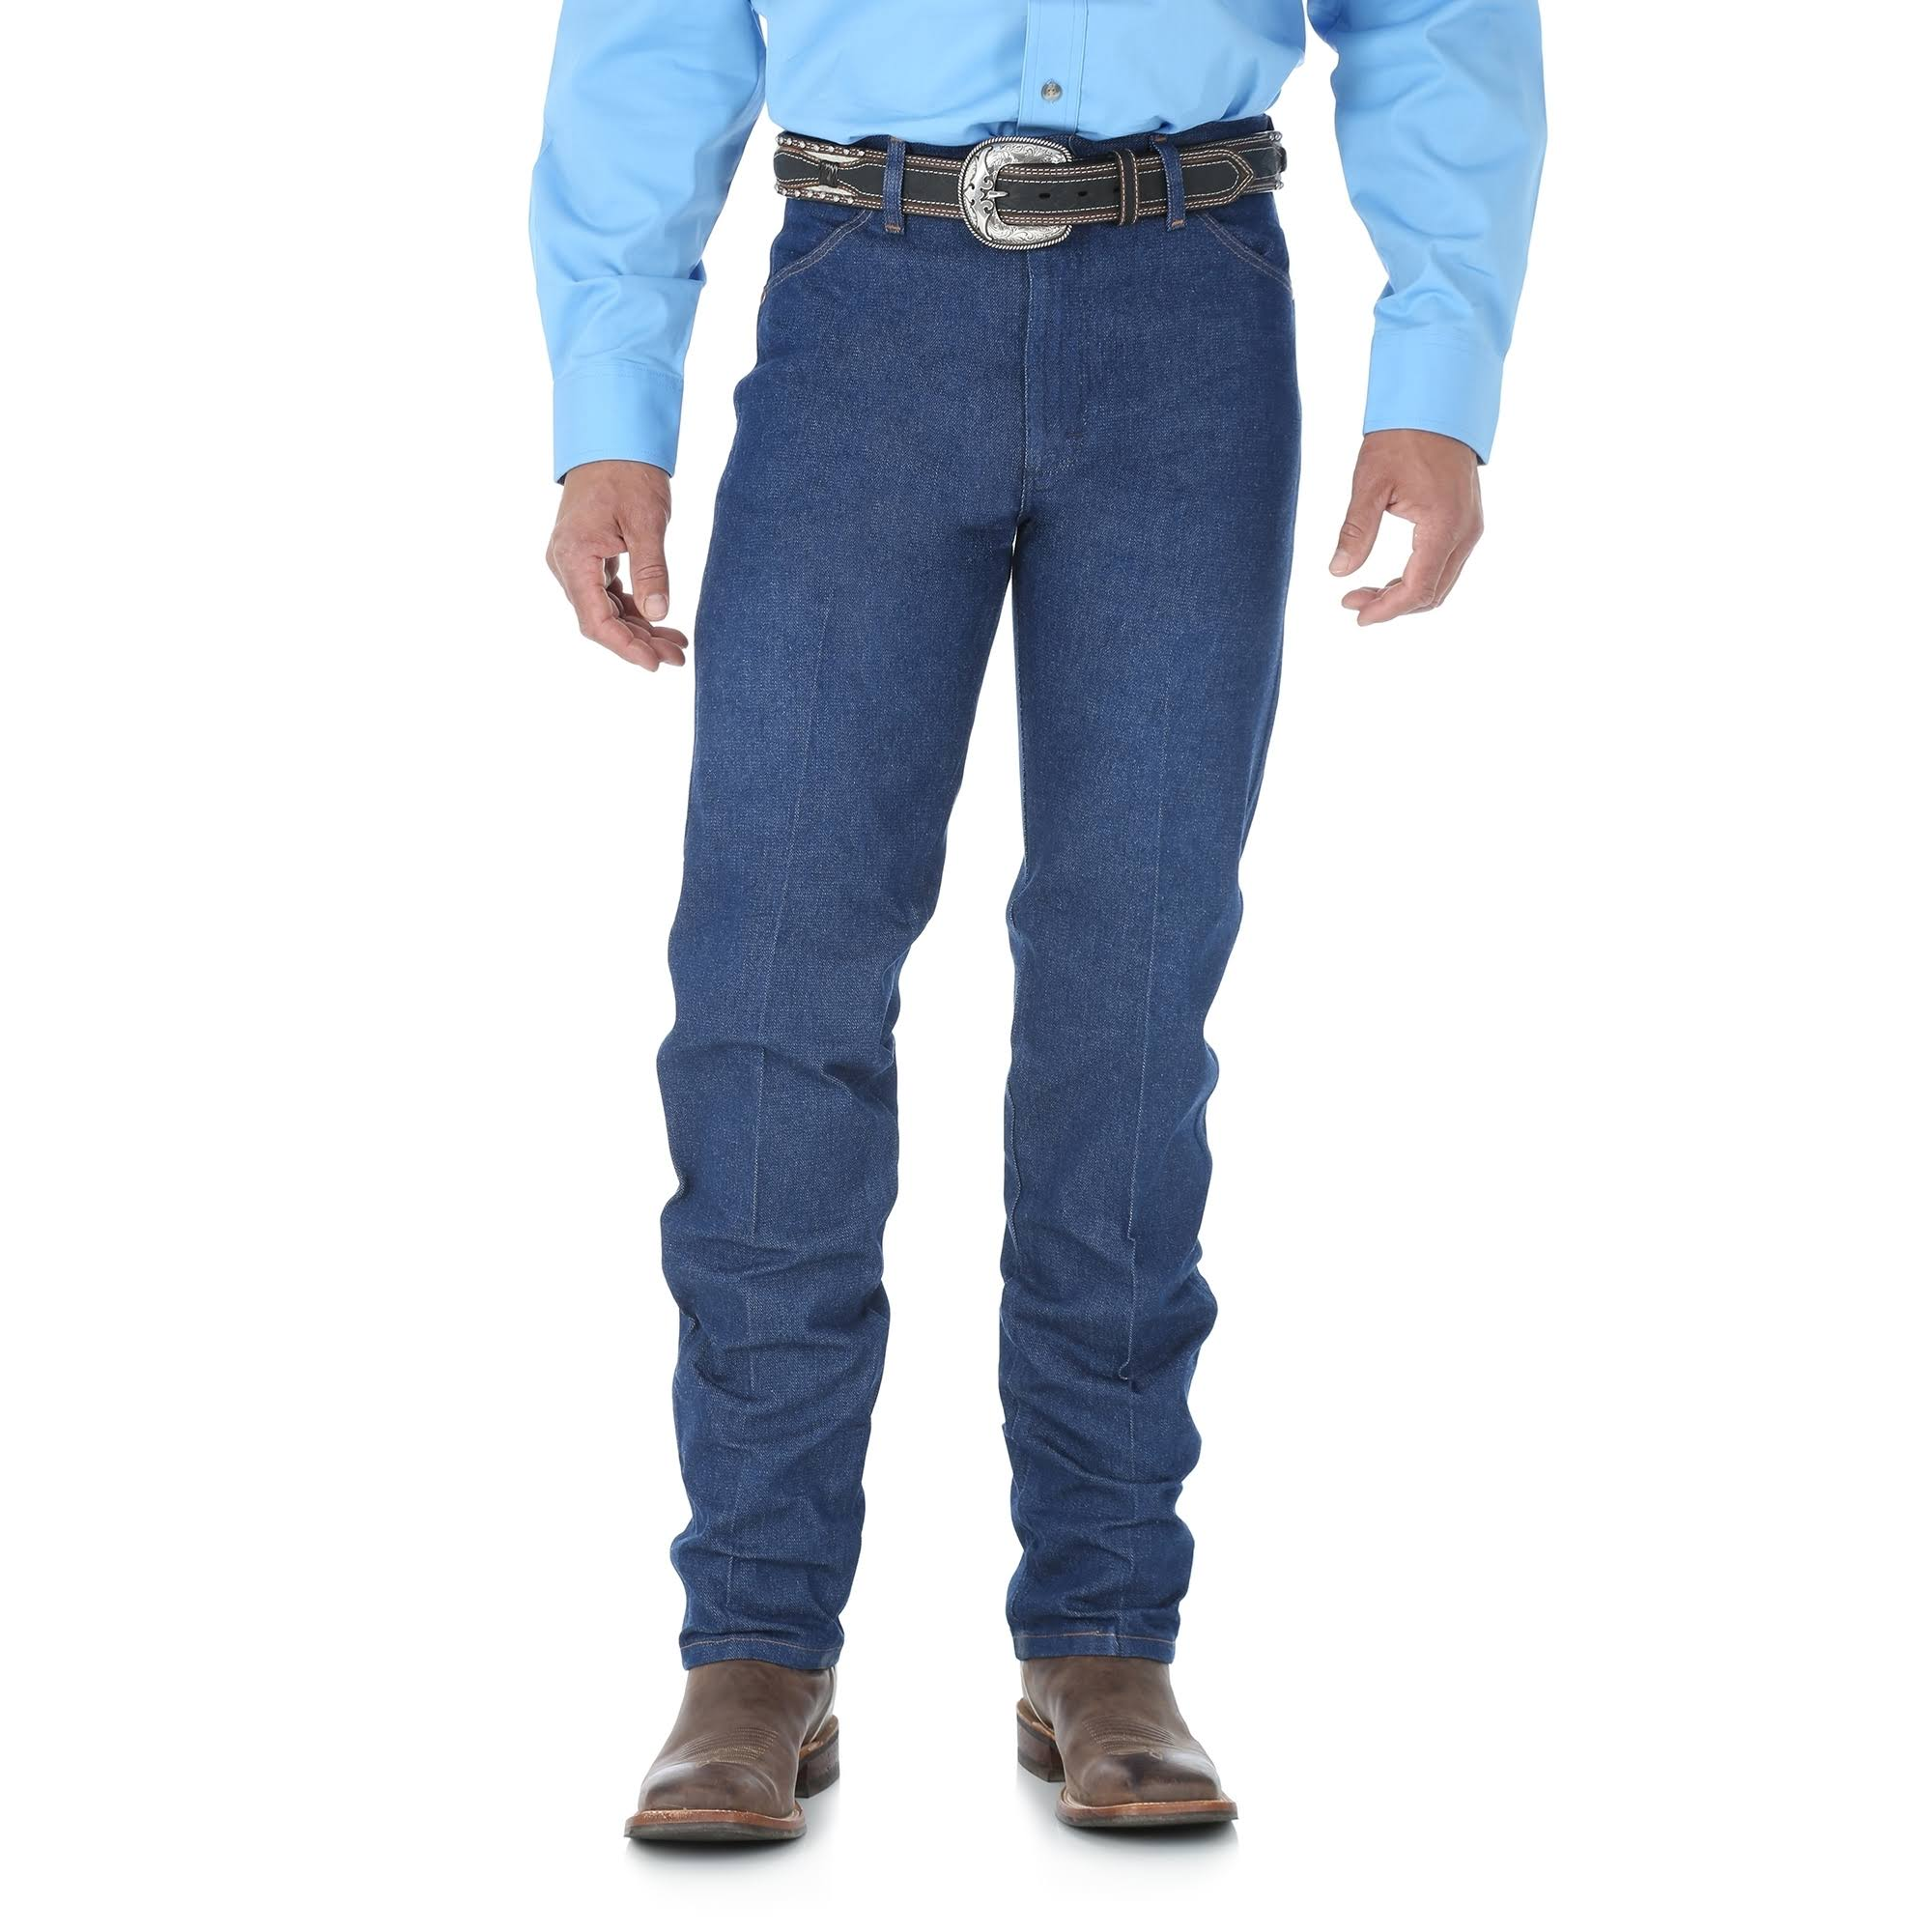 Wrangler Men's Cowboy Cut Original Fit Jean